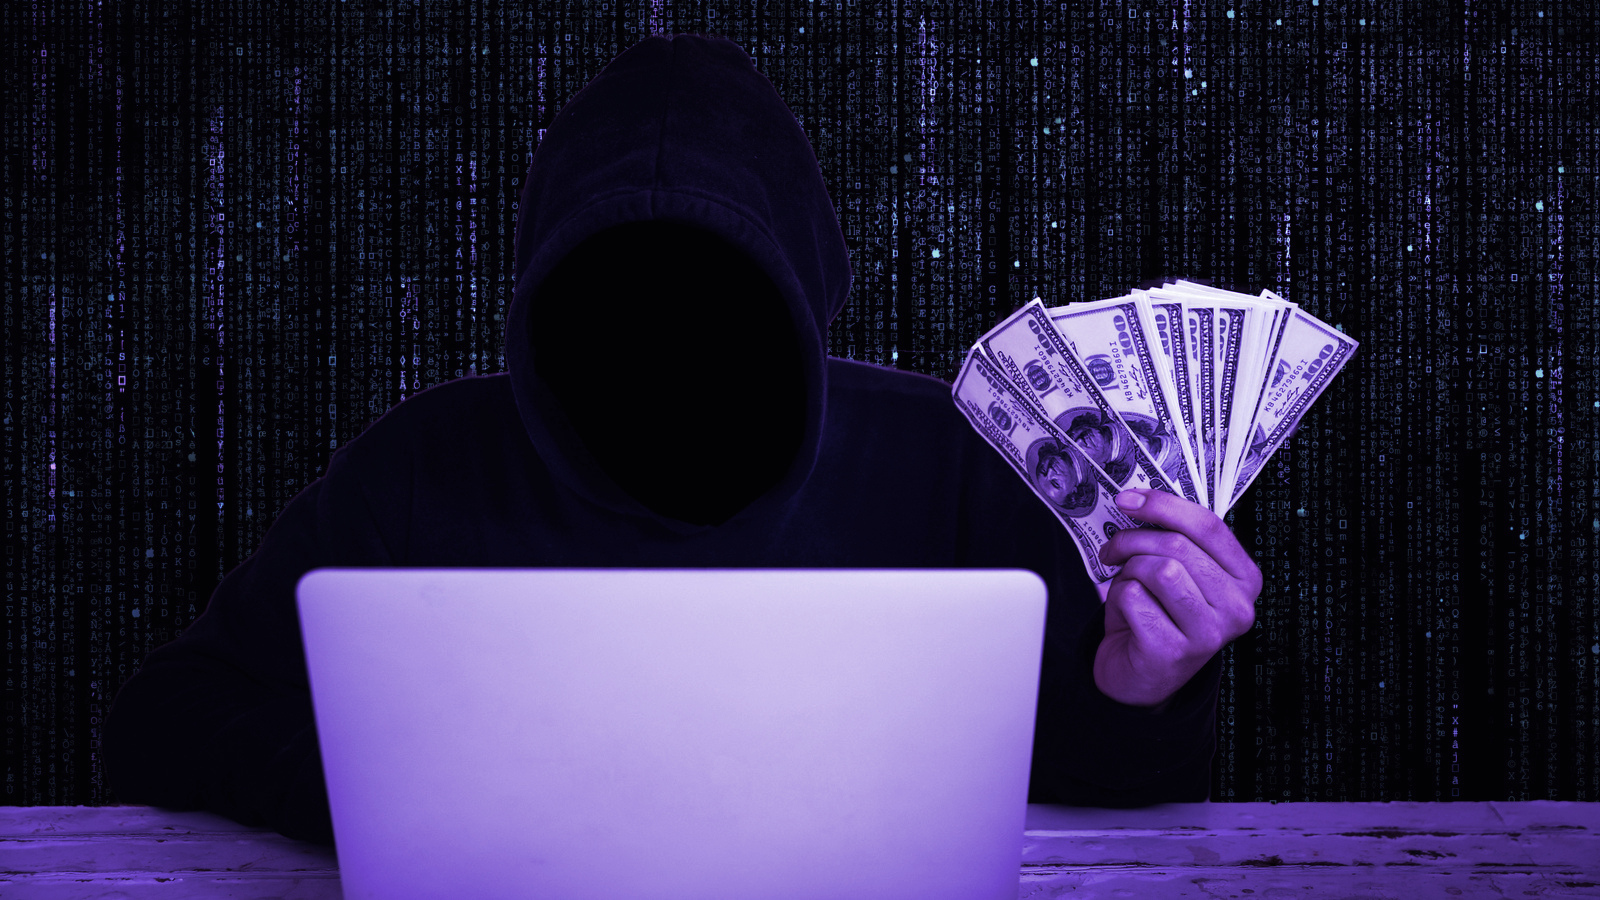 Poly Network Hacker Returns All Funds